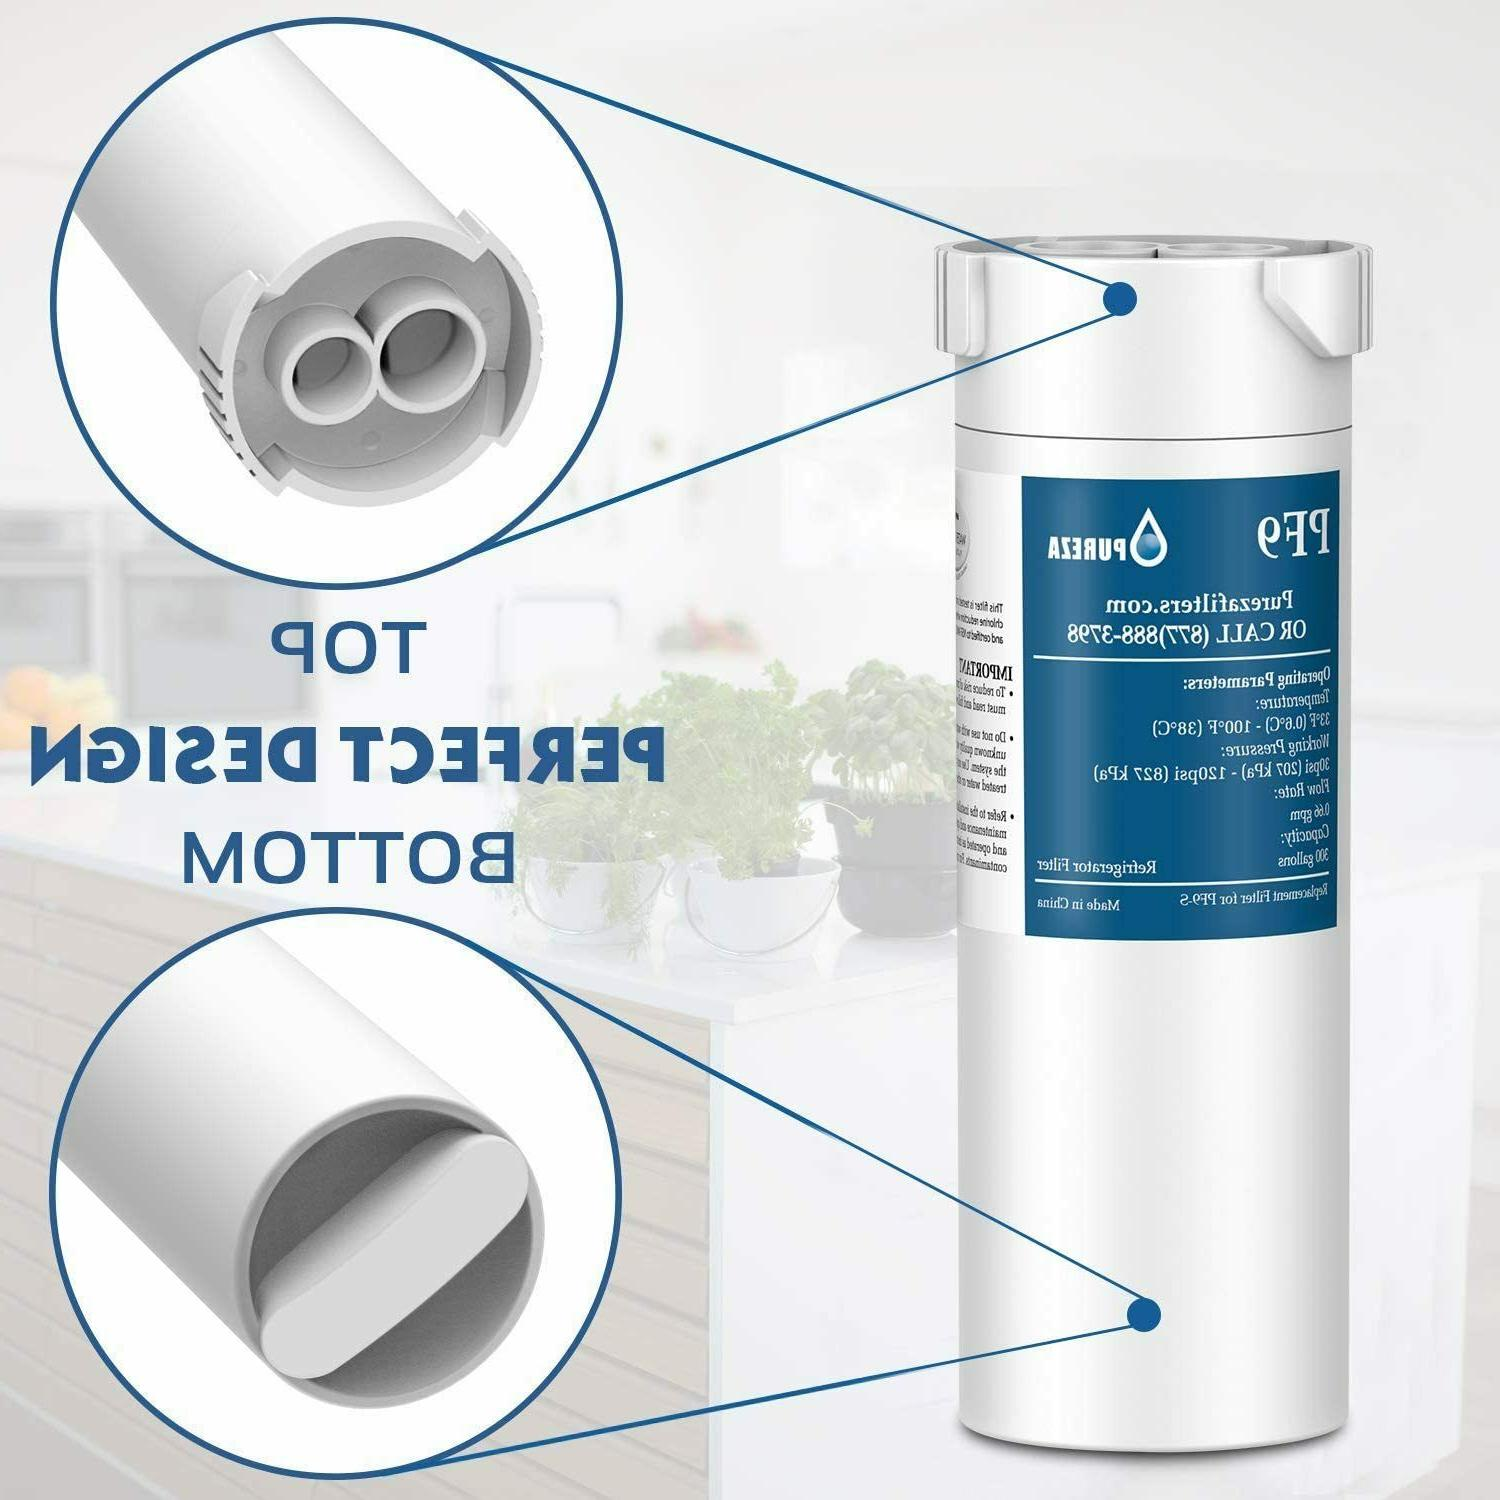 XWF for GE XWF,XWF Genuine Refrigerator,NSF/42,2PACK